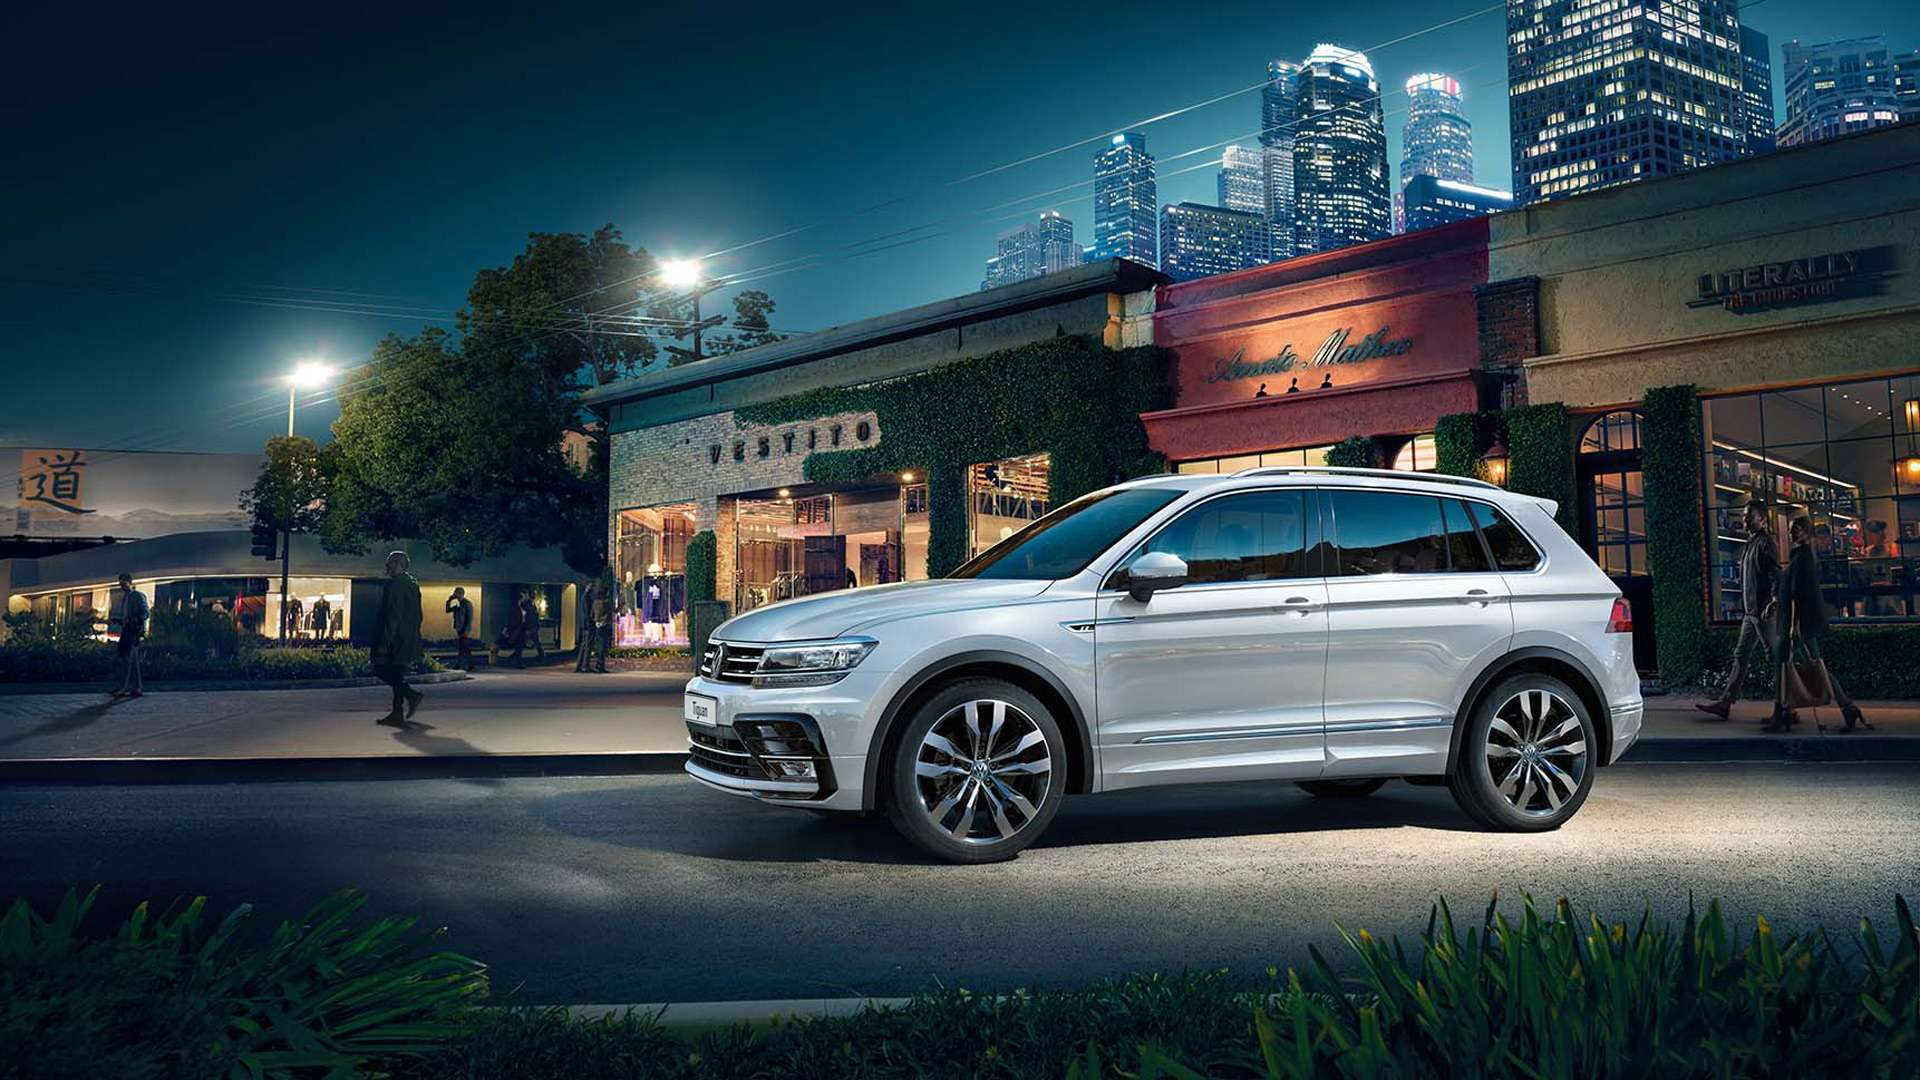 According to the latest study by JATO Dynamics, the Volkswagen Tiguan enjoyed the largest SUV-segment sales in Europe in October. It has also made it into the top five list of Europe's most popular cars.